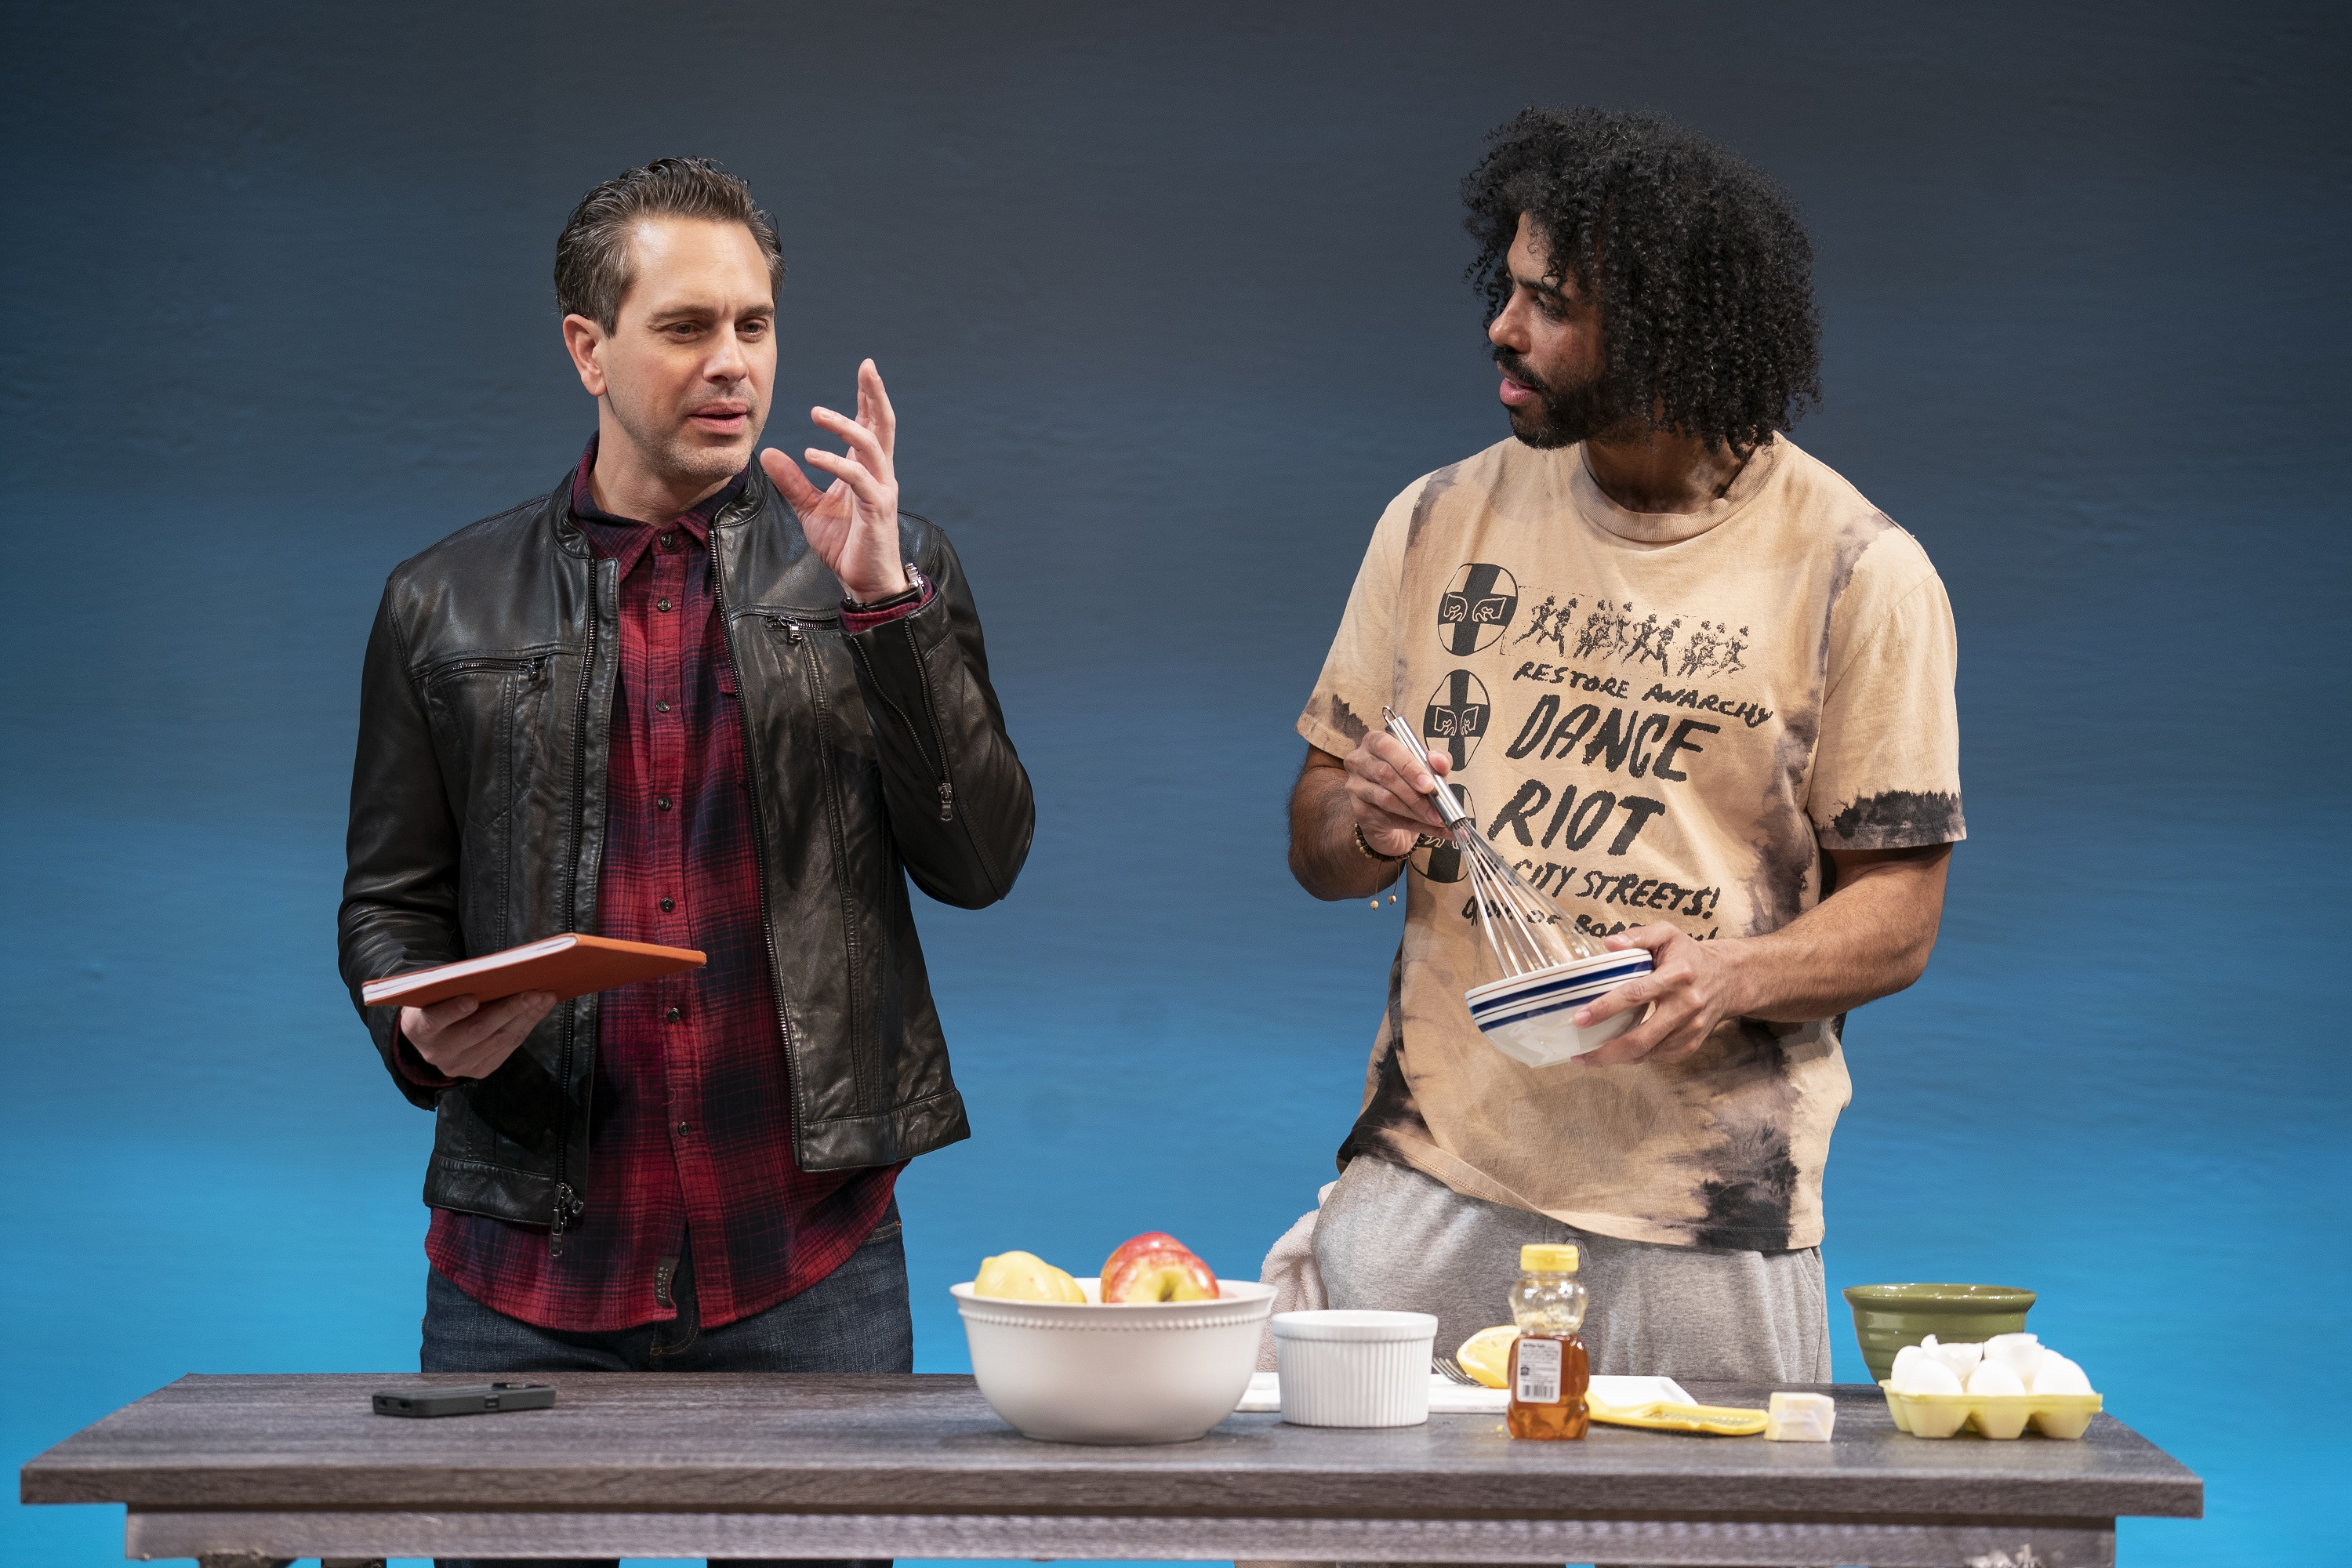 aa51ceaf07028 Thomas Sadoski (left) as Ralph and Daveed Diggs (right) as Leo in a scene  from White Noise.